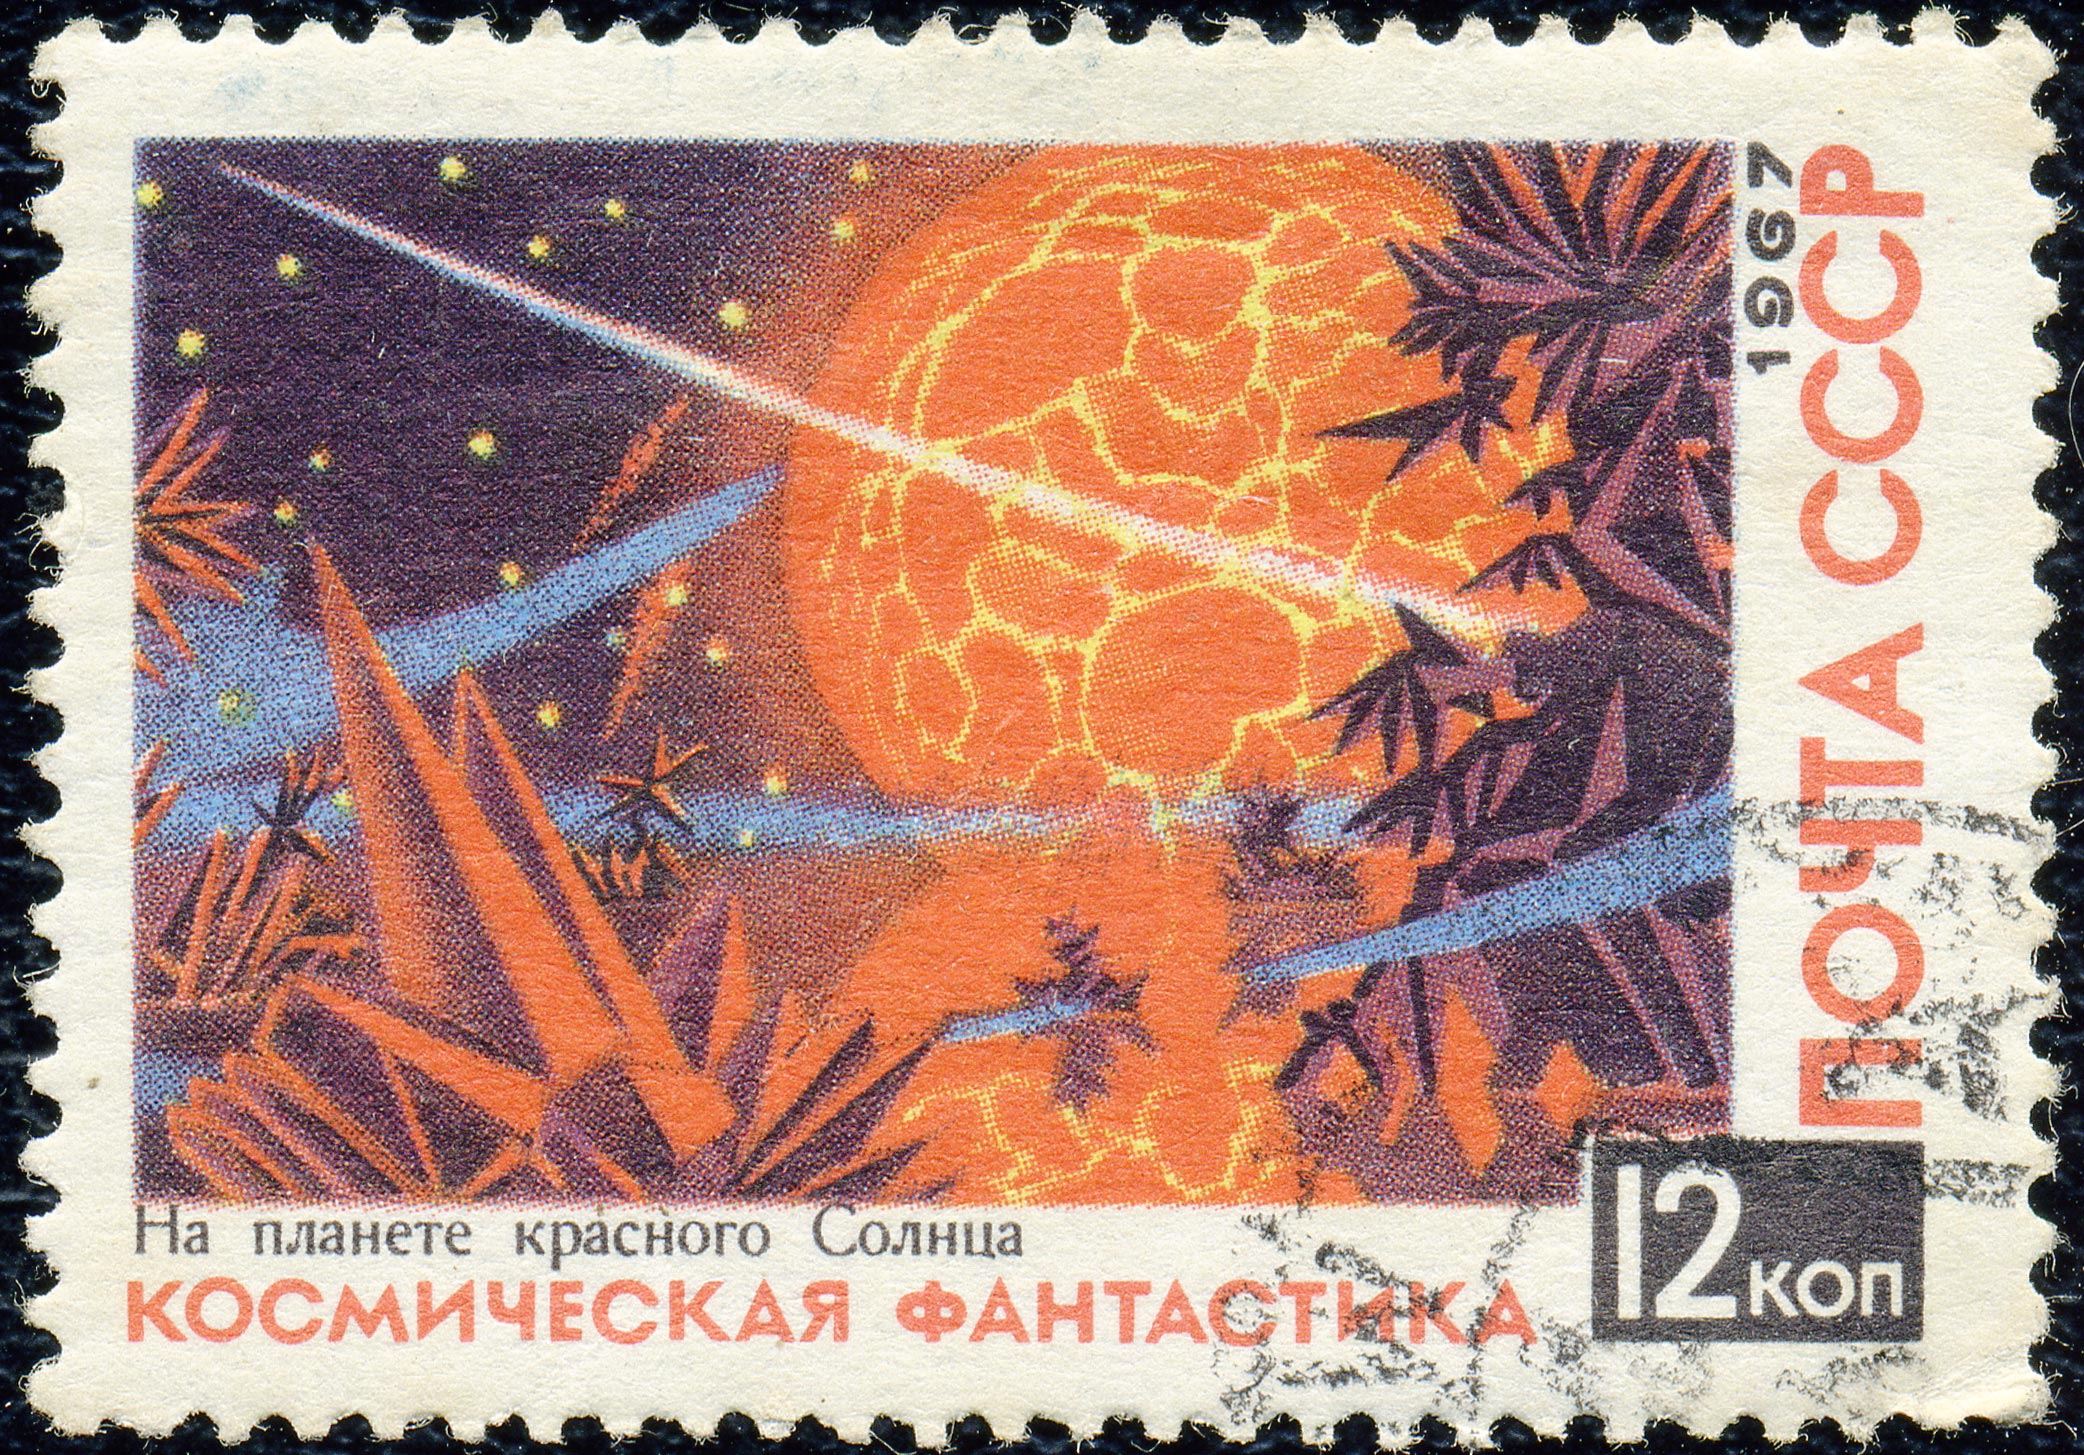 Art - Stamp Art - Russia - Sputnik - USSR 1967 - Science Fiction (2)